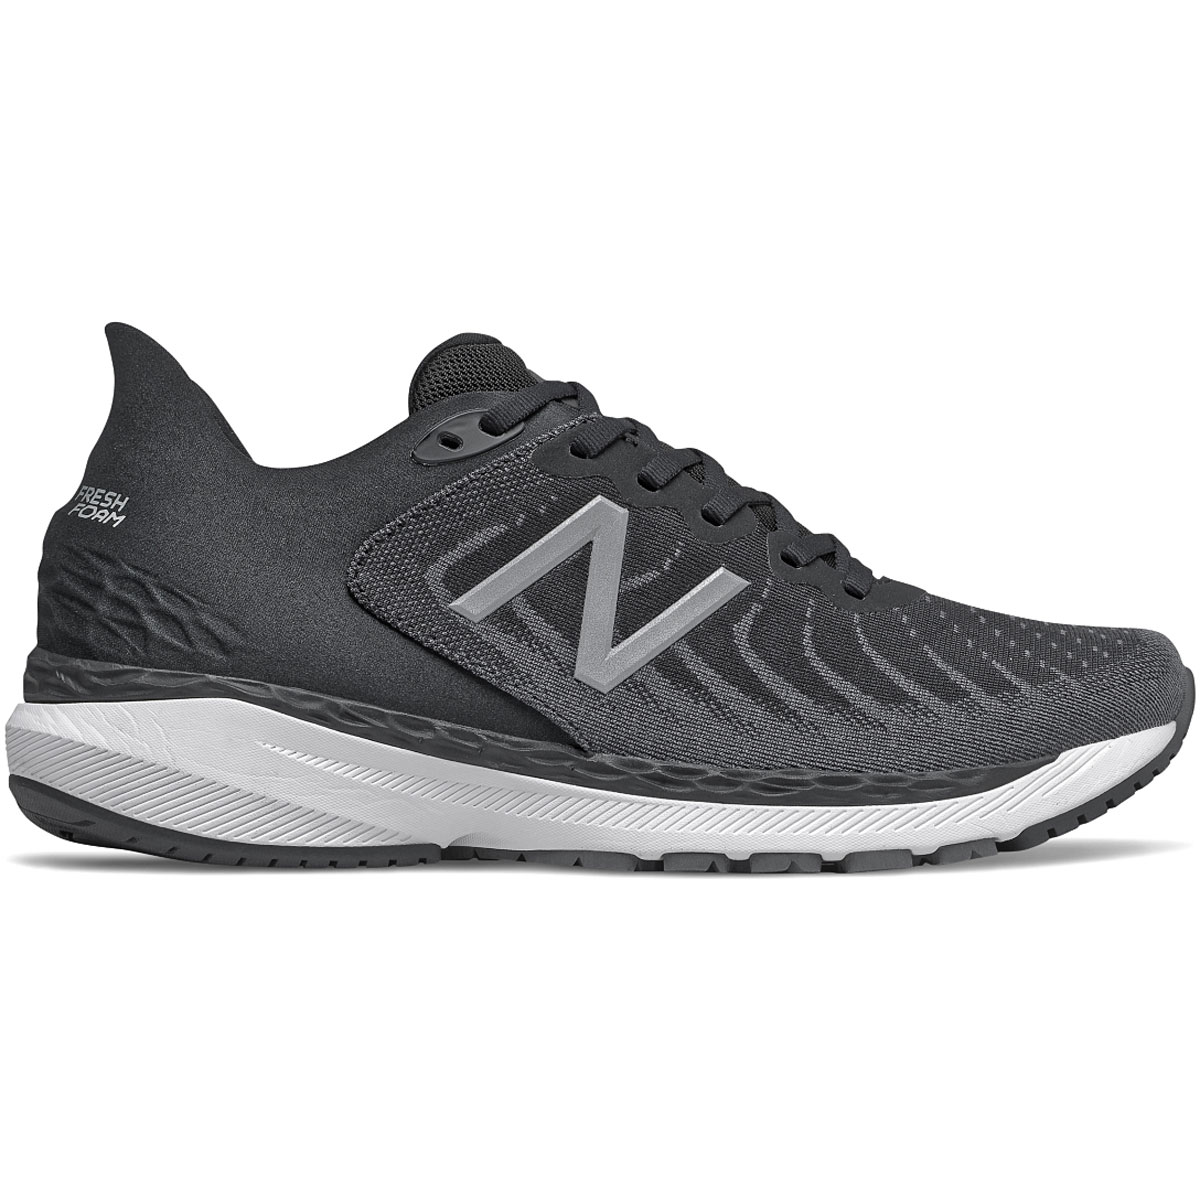 Men's New Balance 860V11 Running Shoe - Color: Black/White/Phantom - Size: 7 - Width: Wide, Black/White/Phantom, large, image 1